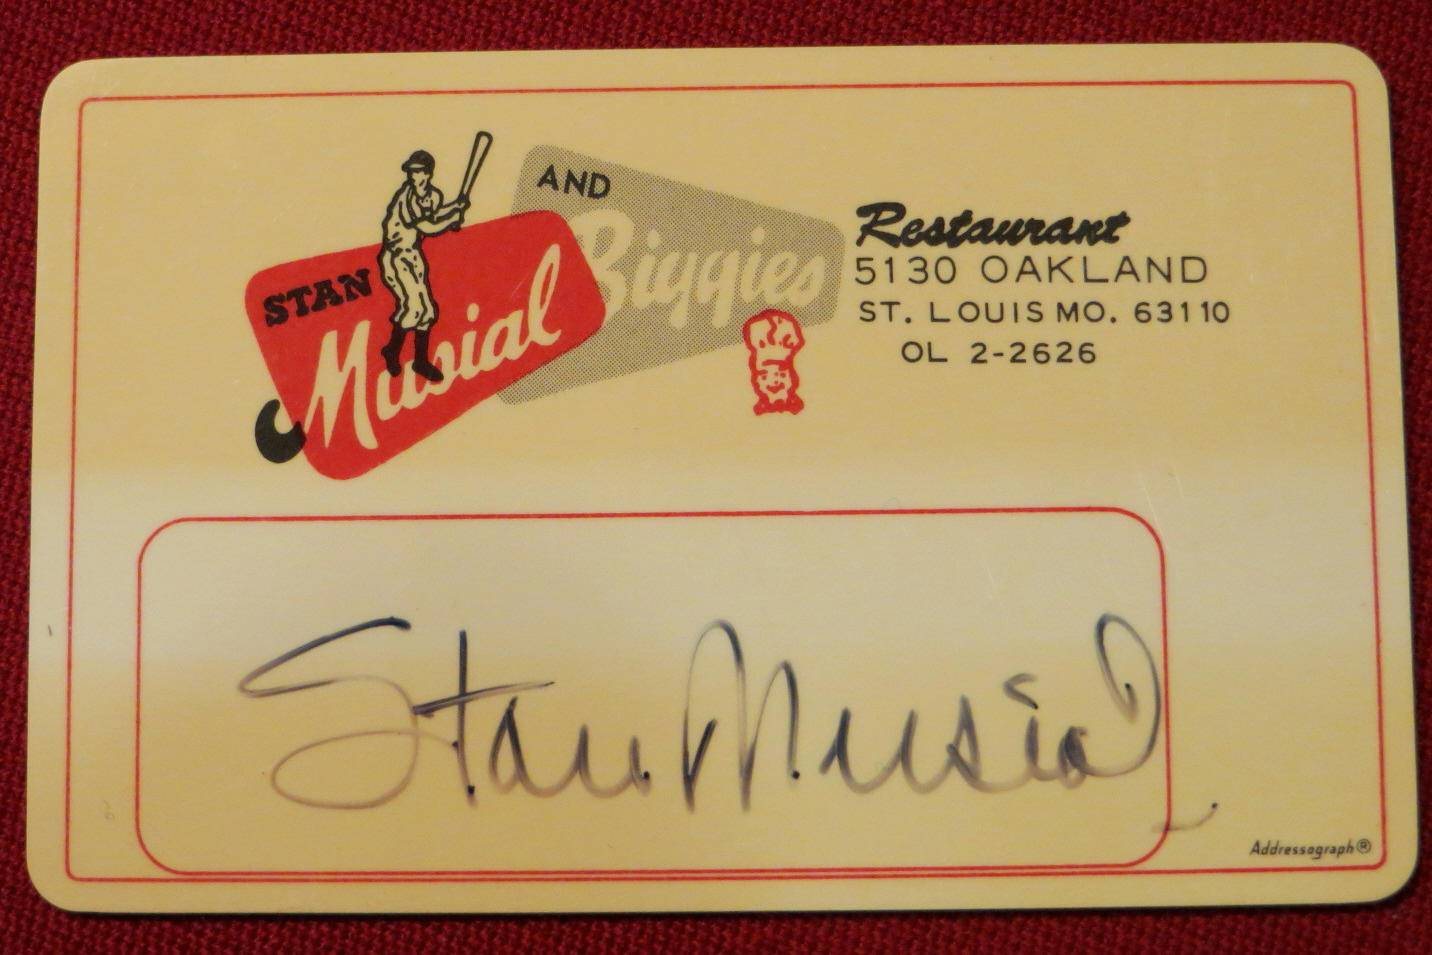 Stan Musial Autographed Musial and Biggies Restaurant Entry Card